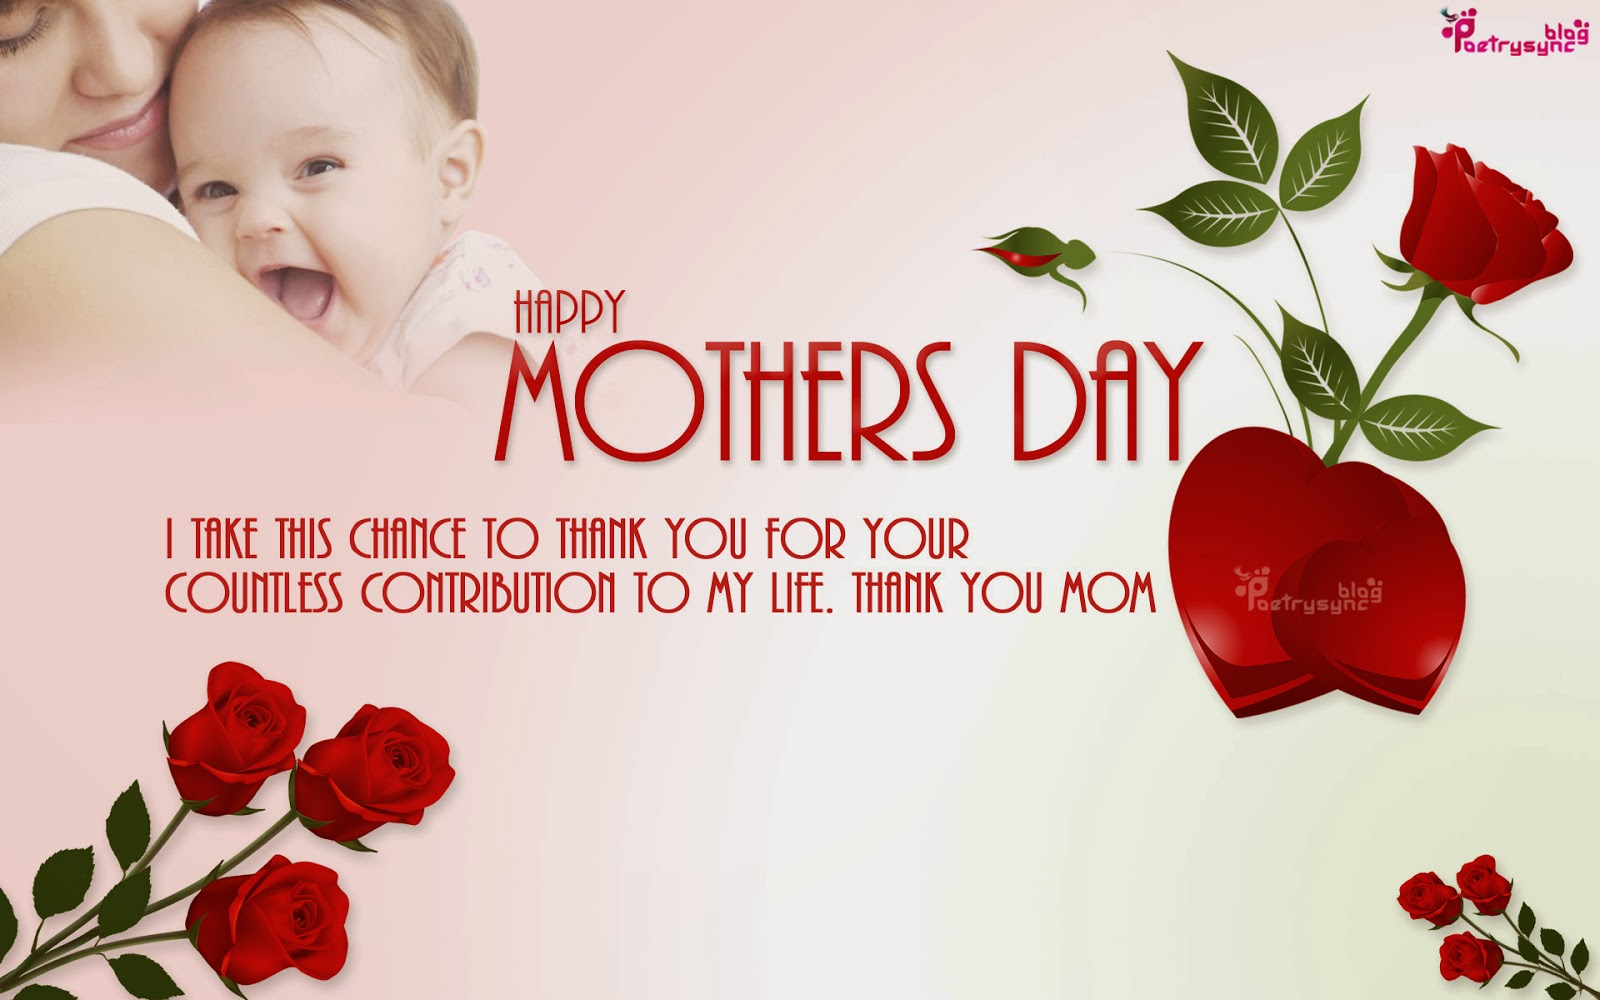 Mothers day 2017 wishes sayings greetings for facebook whatsapp mothers day 2017 wishes sayings greetings for facebook whatsapp kristyandbryce Choice Image